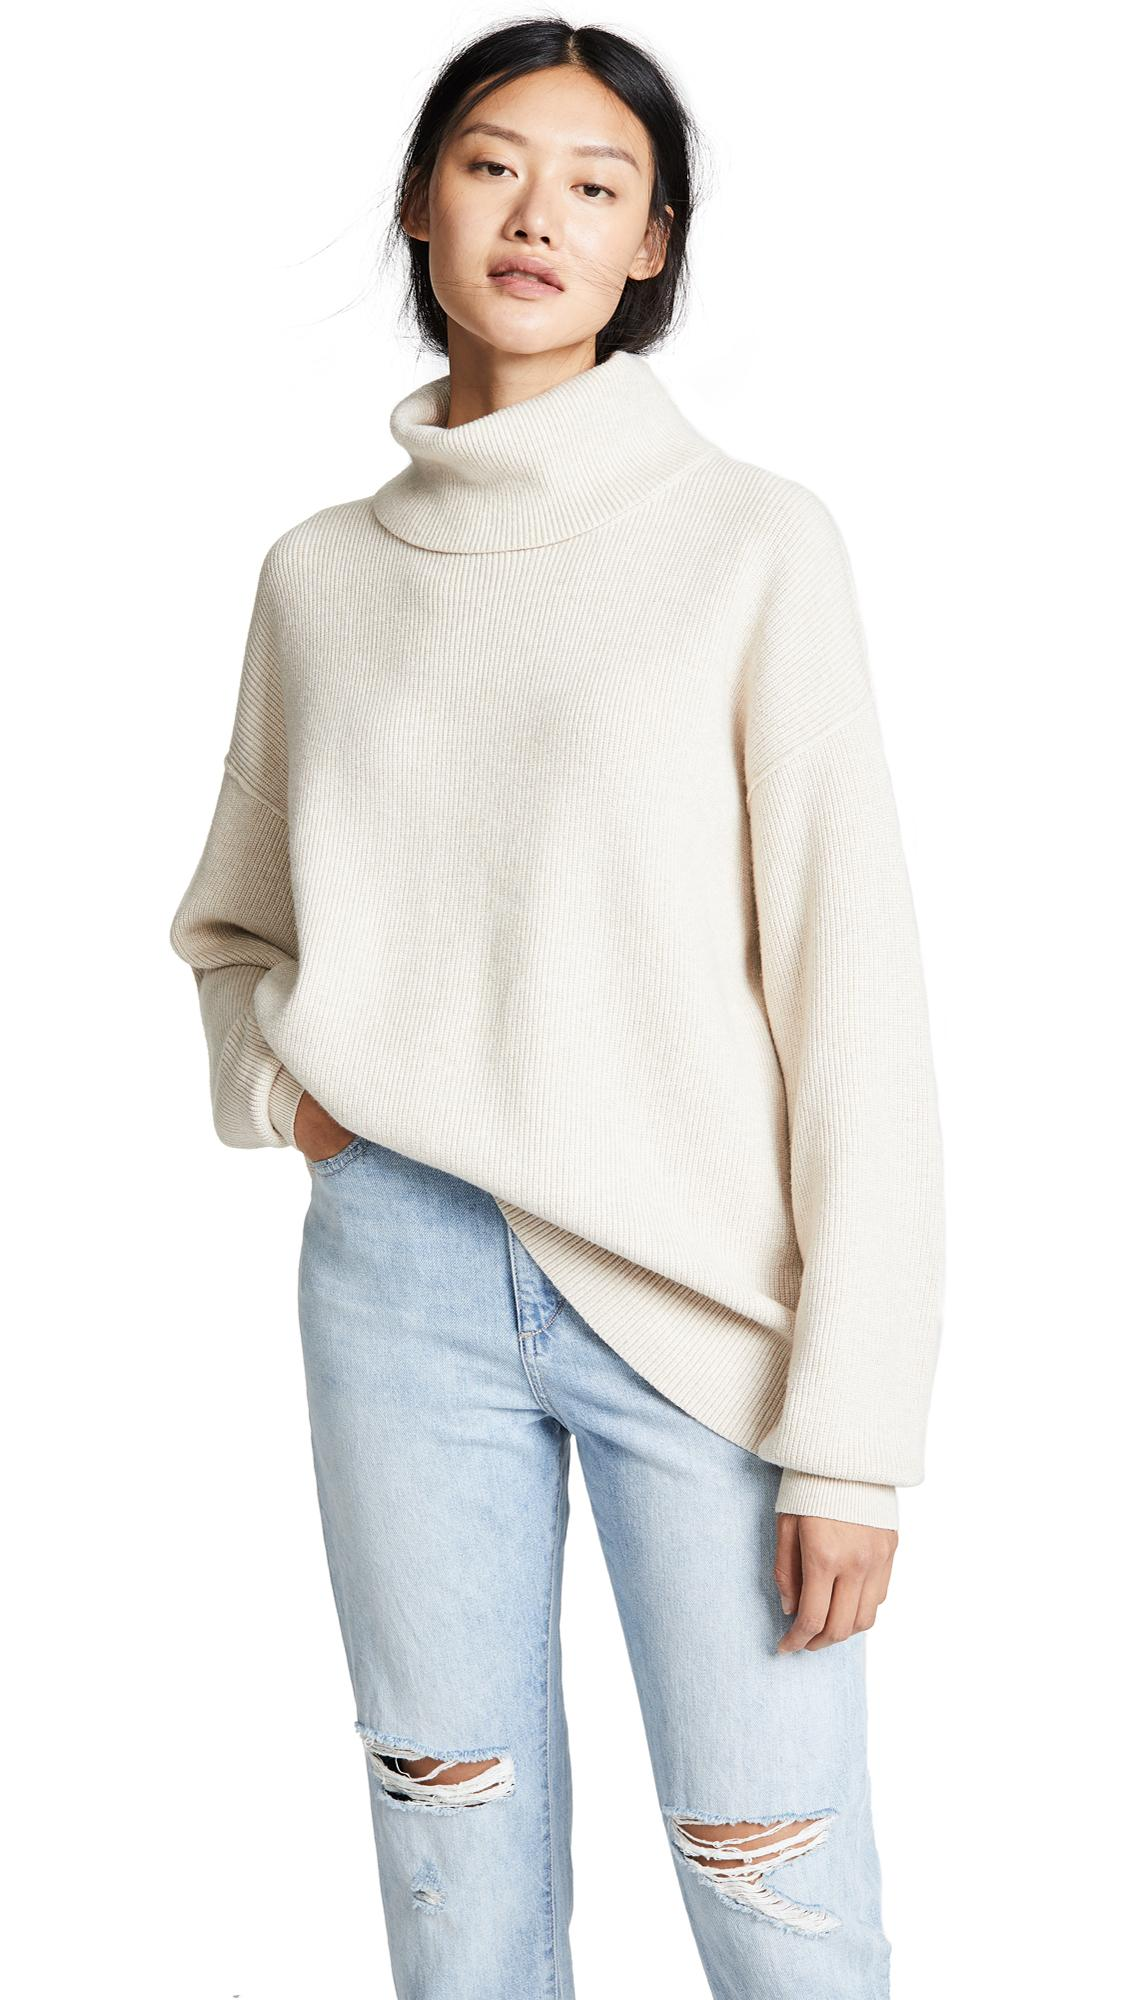 5e4859b6b1a6 Free People Softly Structured Tunic Sweater In Oatmeal Heather ...